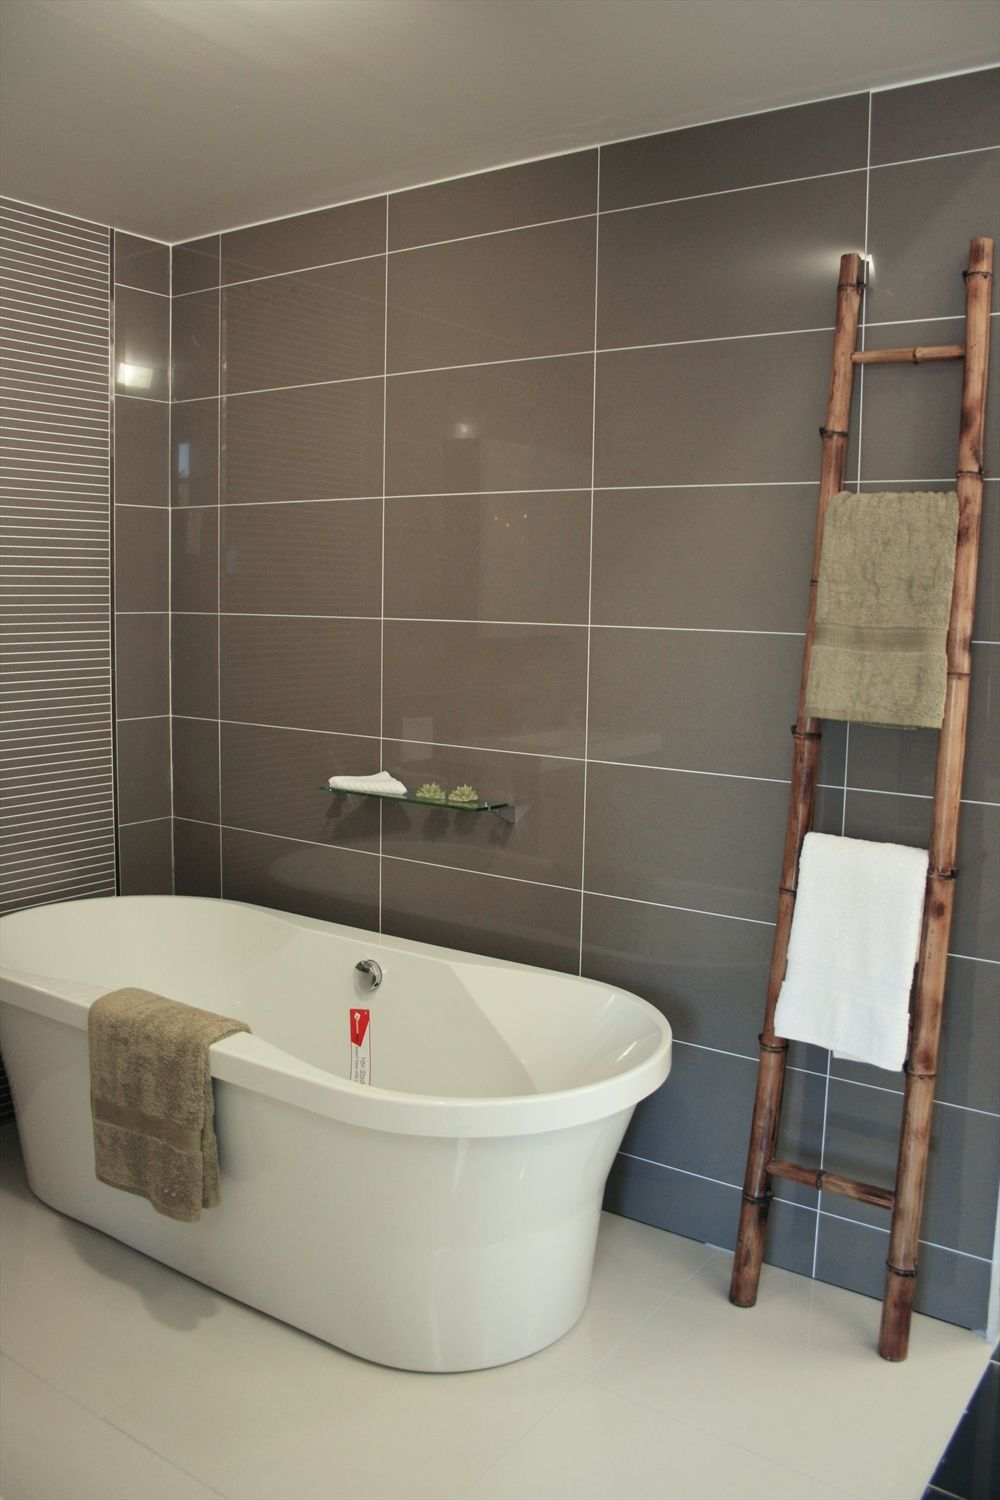 What Do You Think Of This Bathrooms Tile Idea I Got From